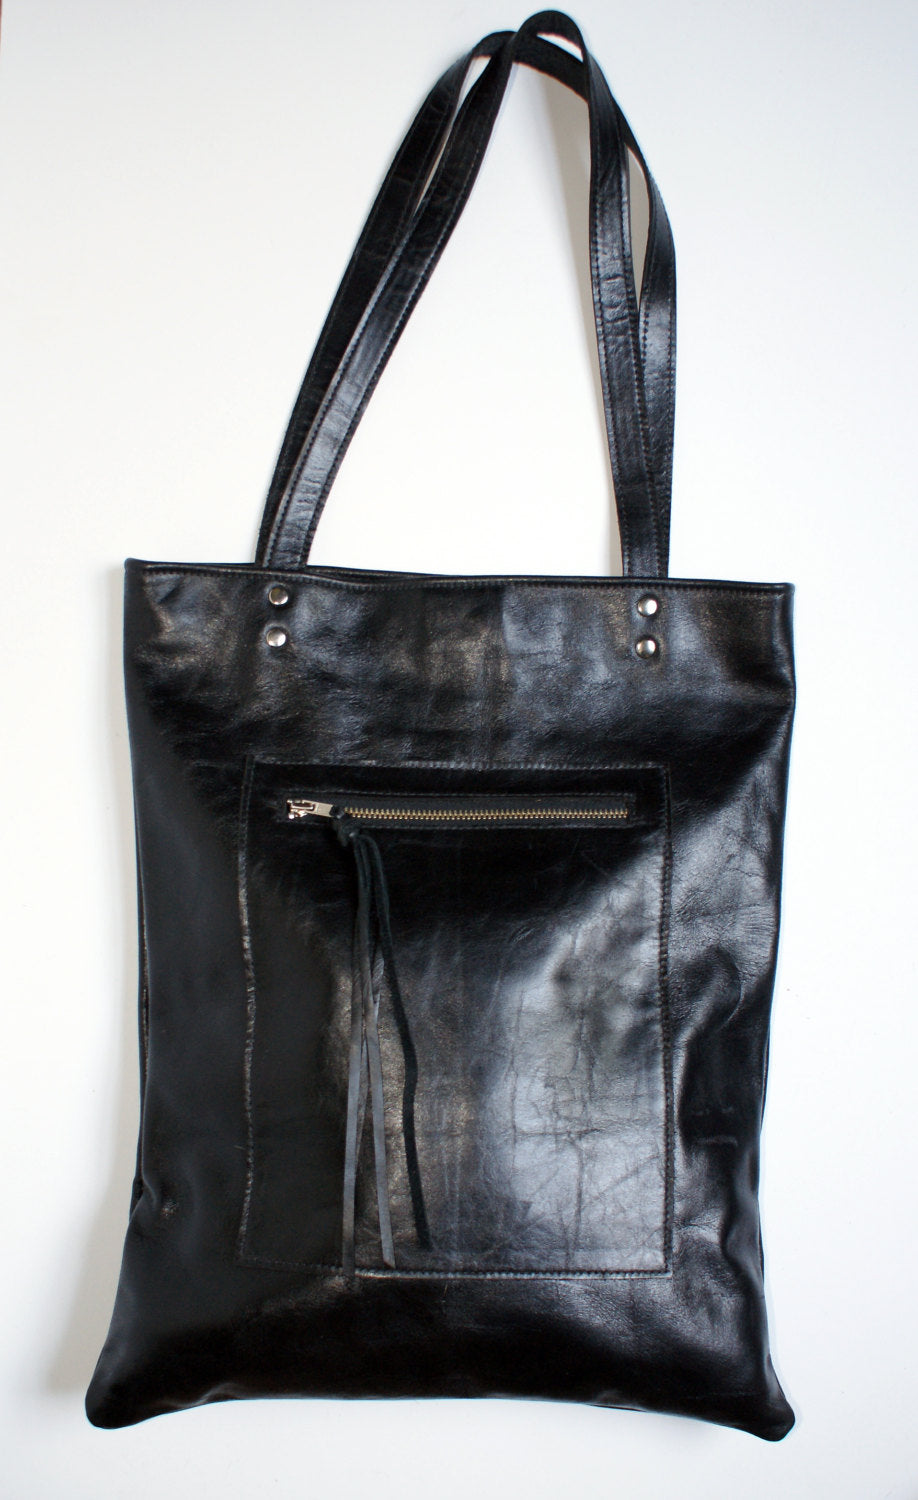 Marge Rudy HACKER Leather Tote Laptop Bag